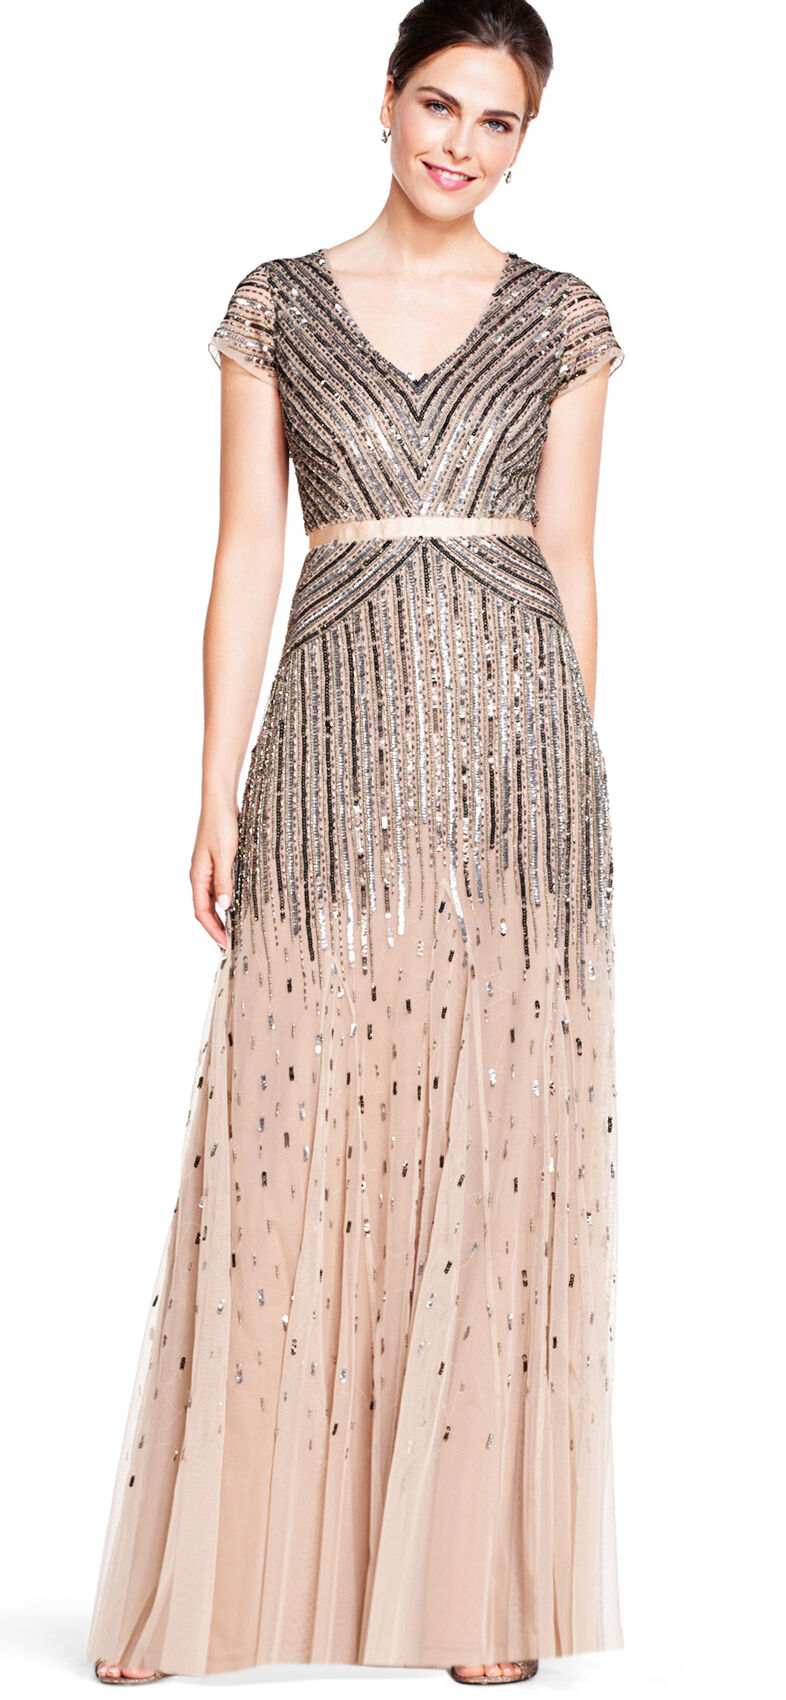 Beaded V-Neck Gown by Adrianna Papell - Nude - Mothers Only